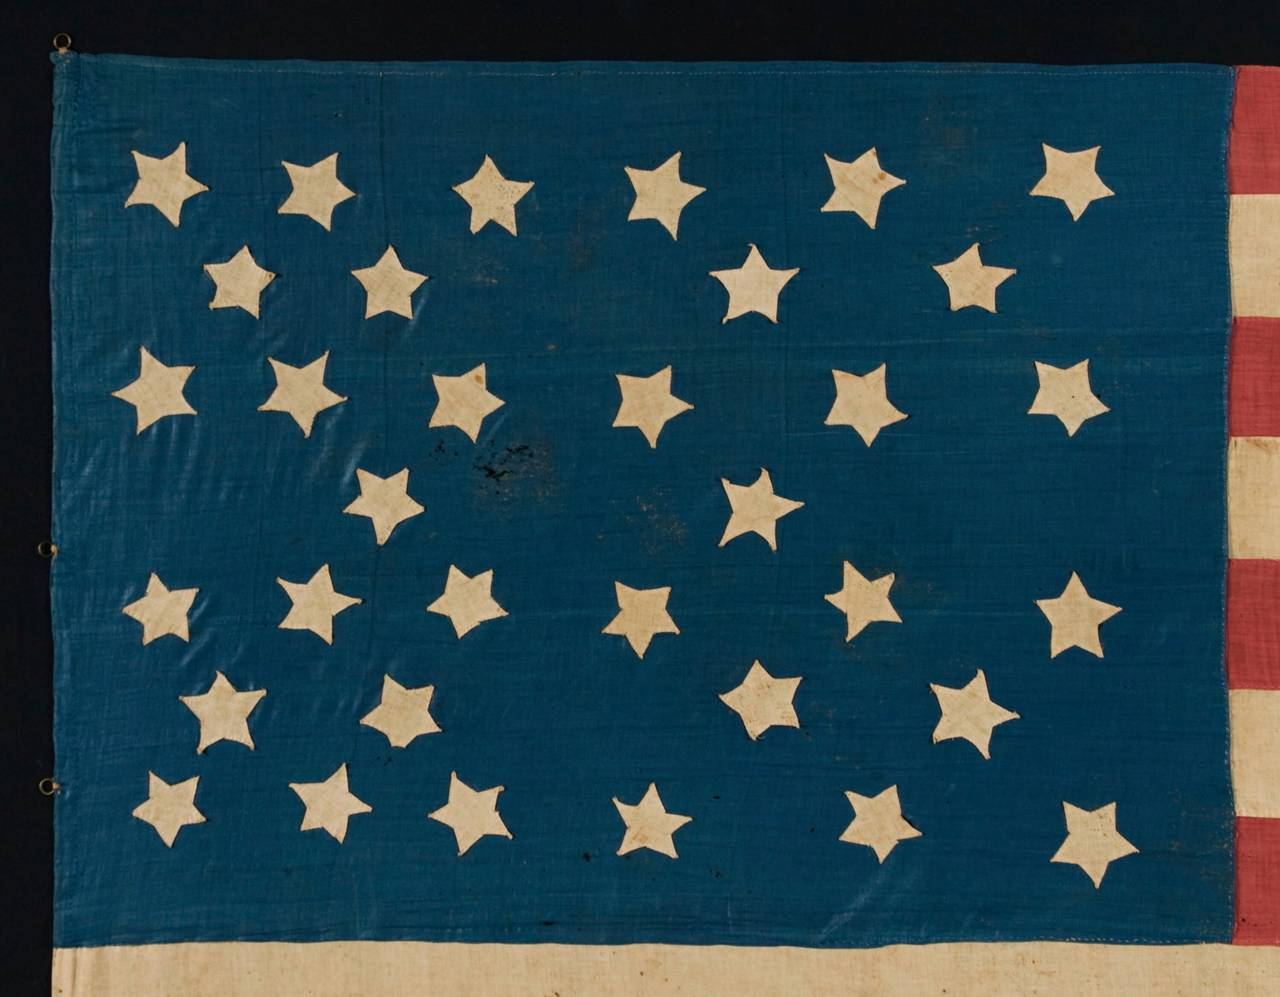 Homemade 34-star civil war flag with its stars arranged on a cornflower blue canton in a very interesting configuration that incorporates the crosses of St. Andrew and St. George, possibly made with southern sympathies, 1861-1863: